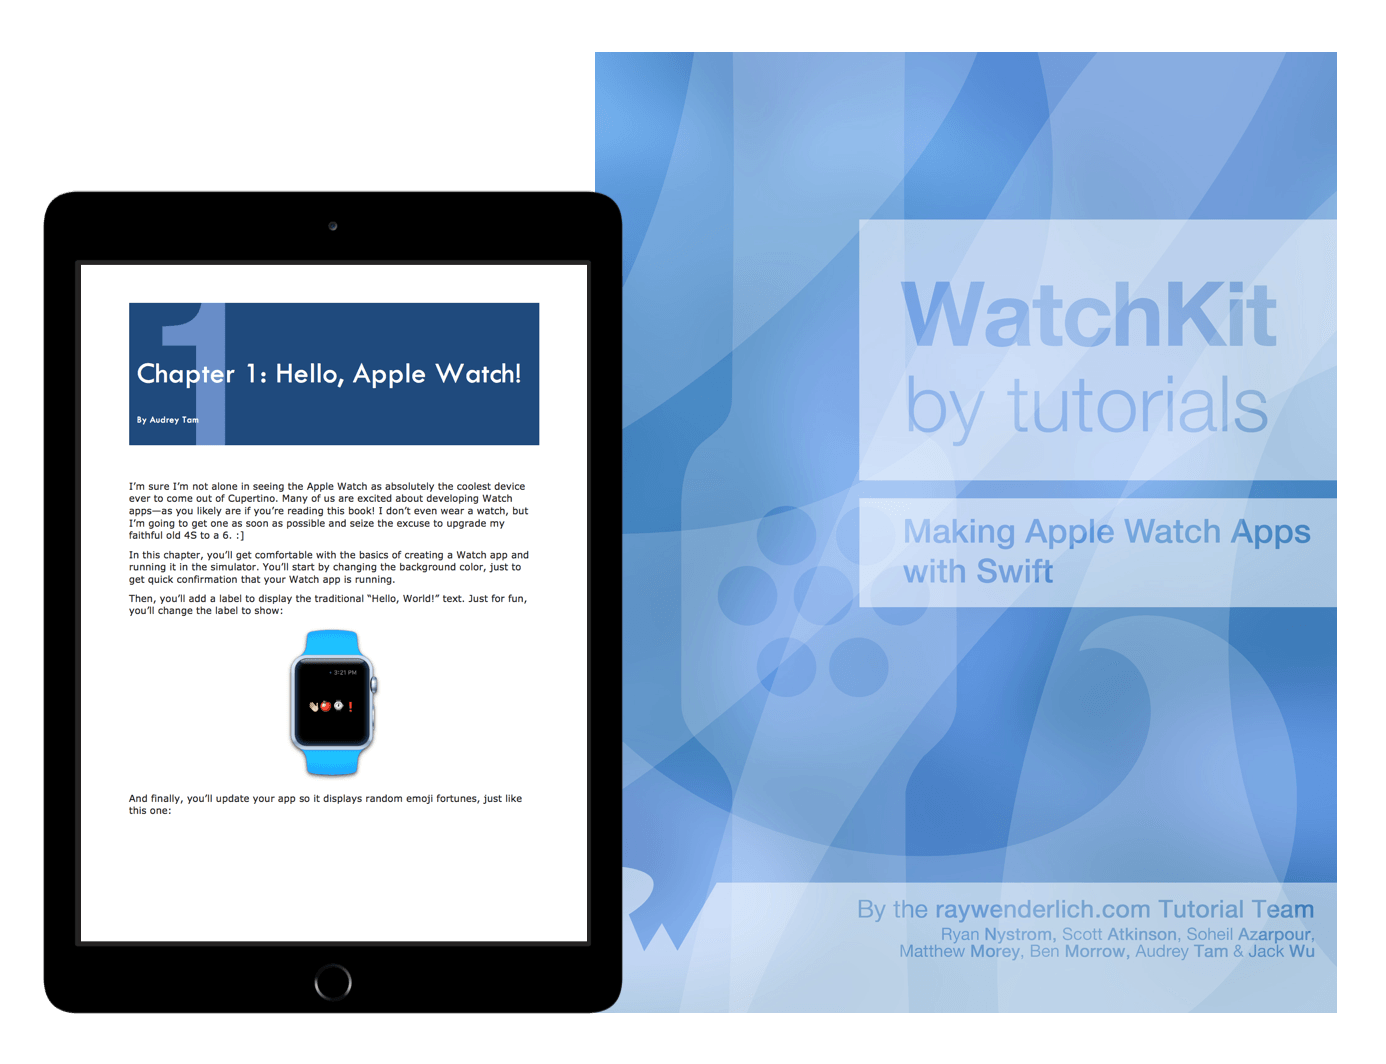 Watchkit by Tutorials book cover